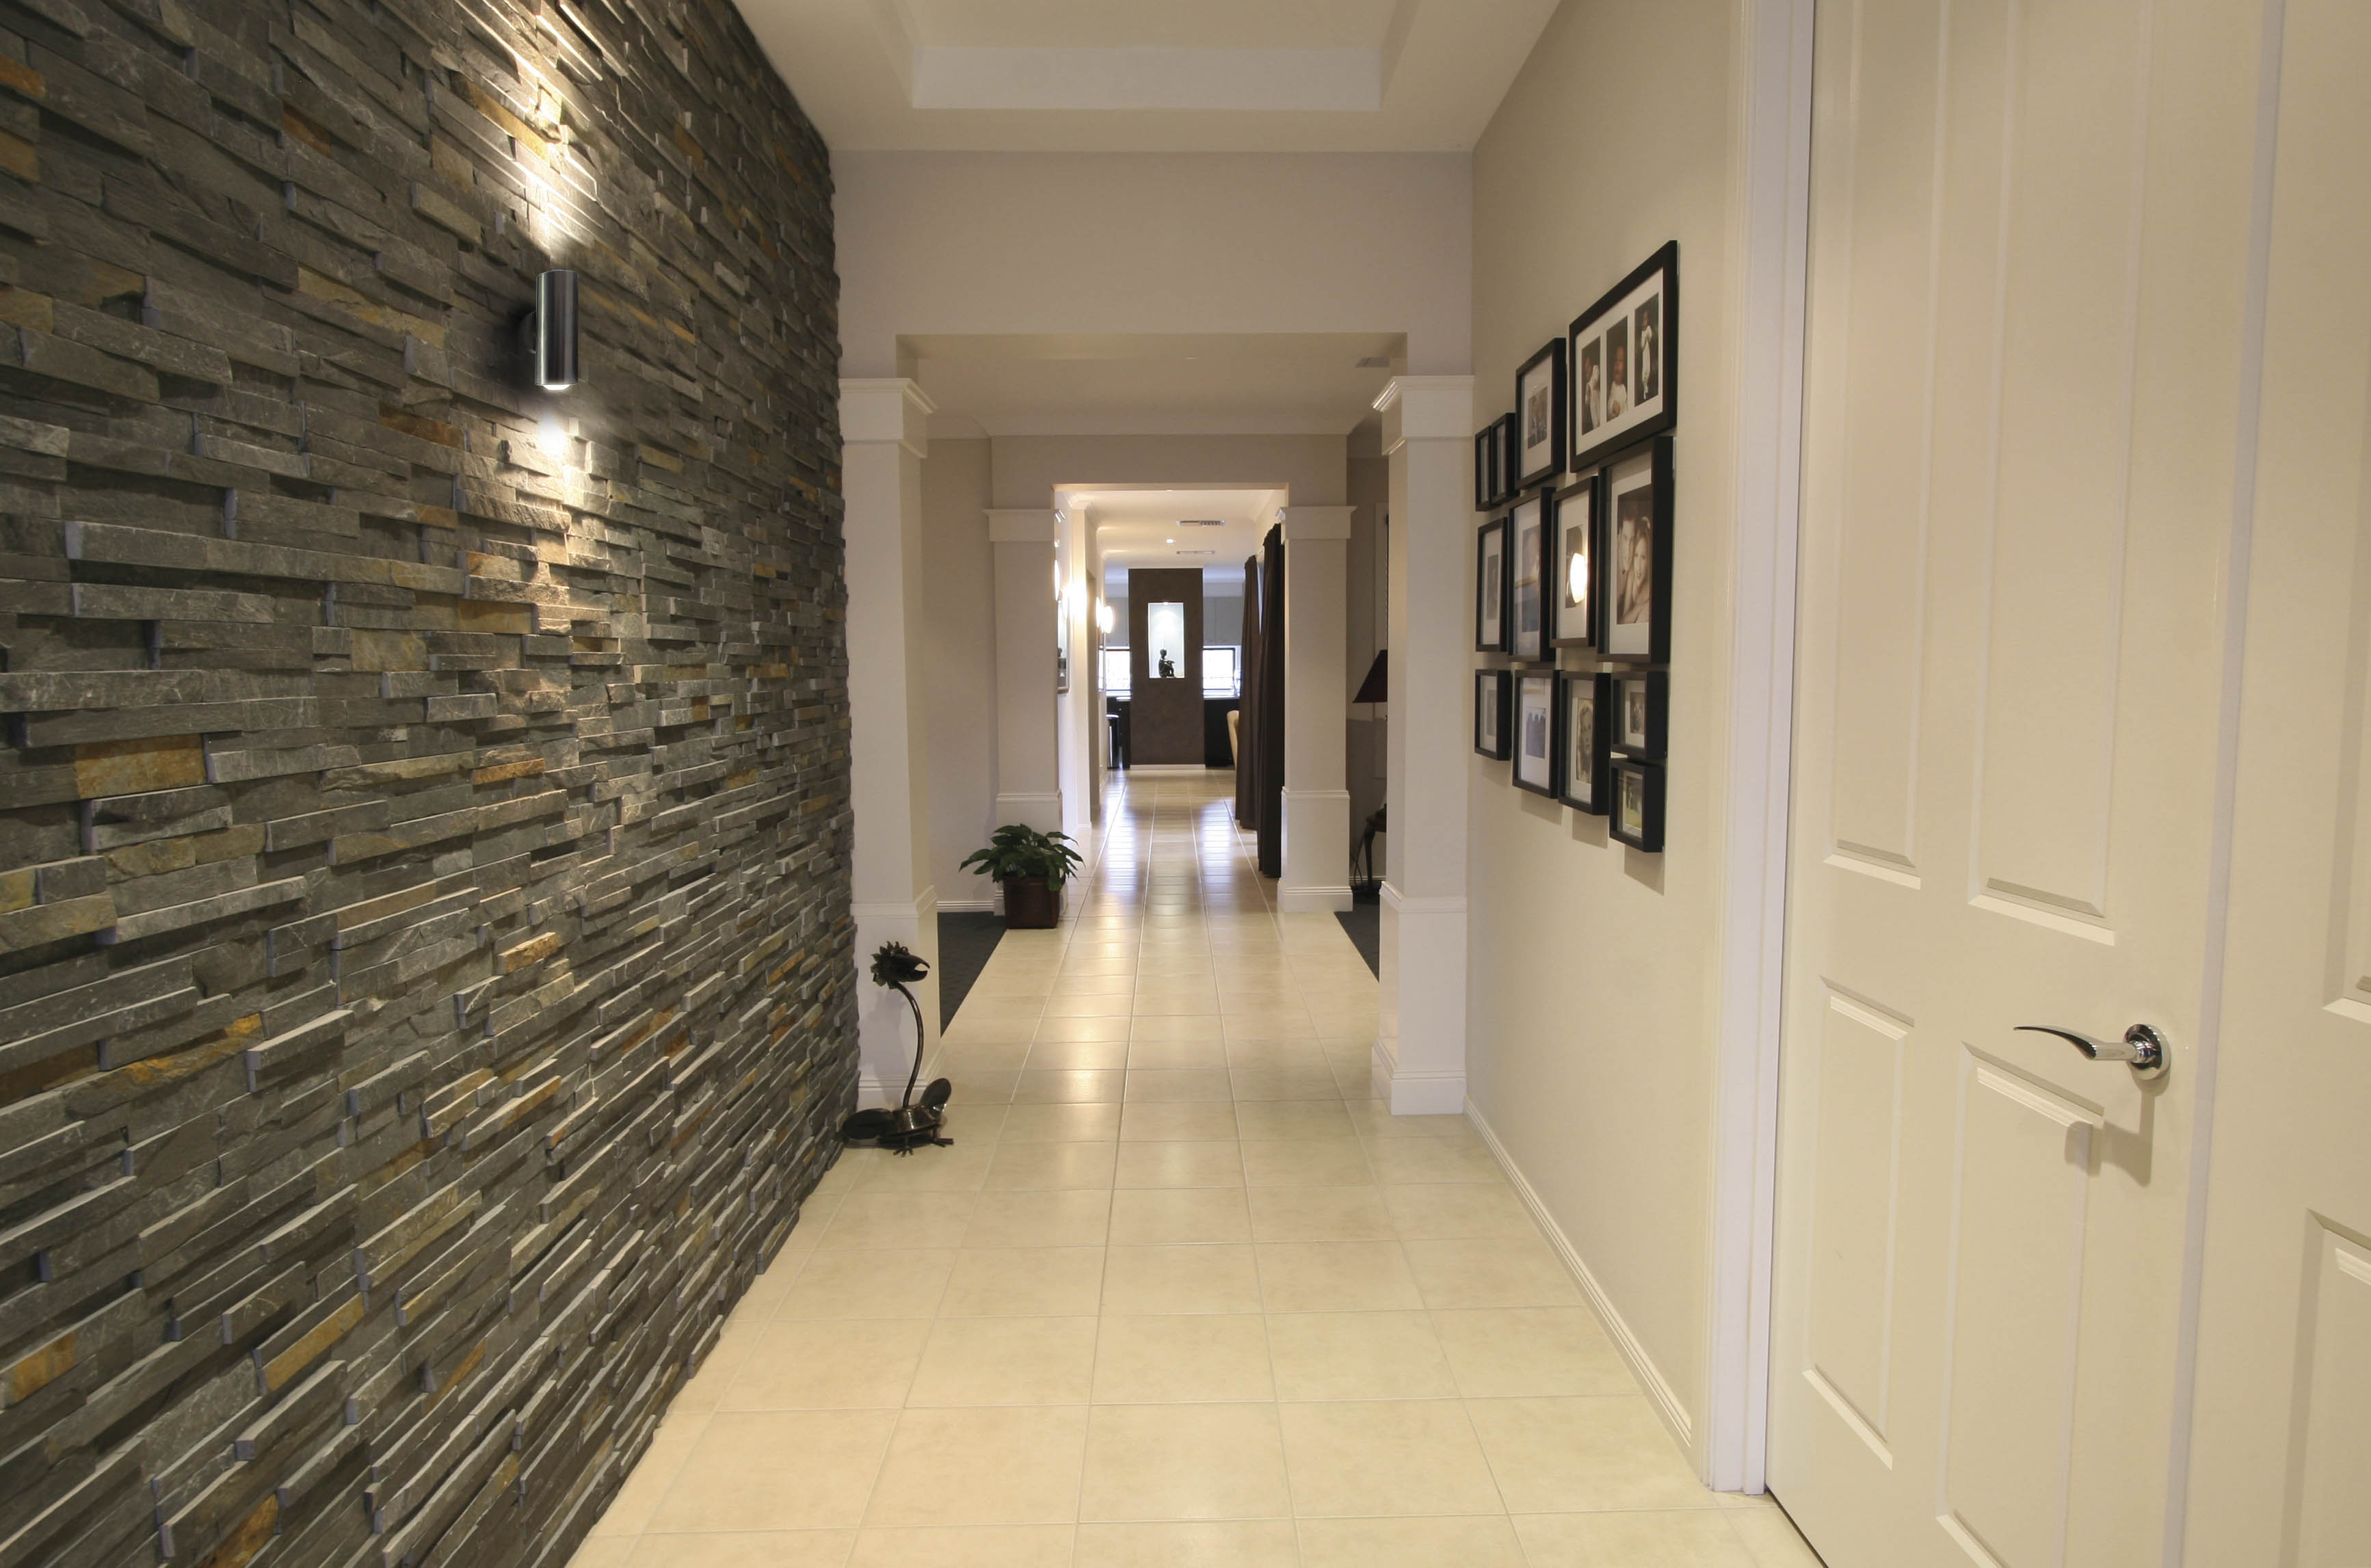 Looking down the hallway of a modern home with whote tiles for flooring and stoneword wall on left.